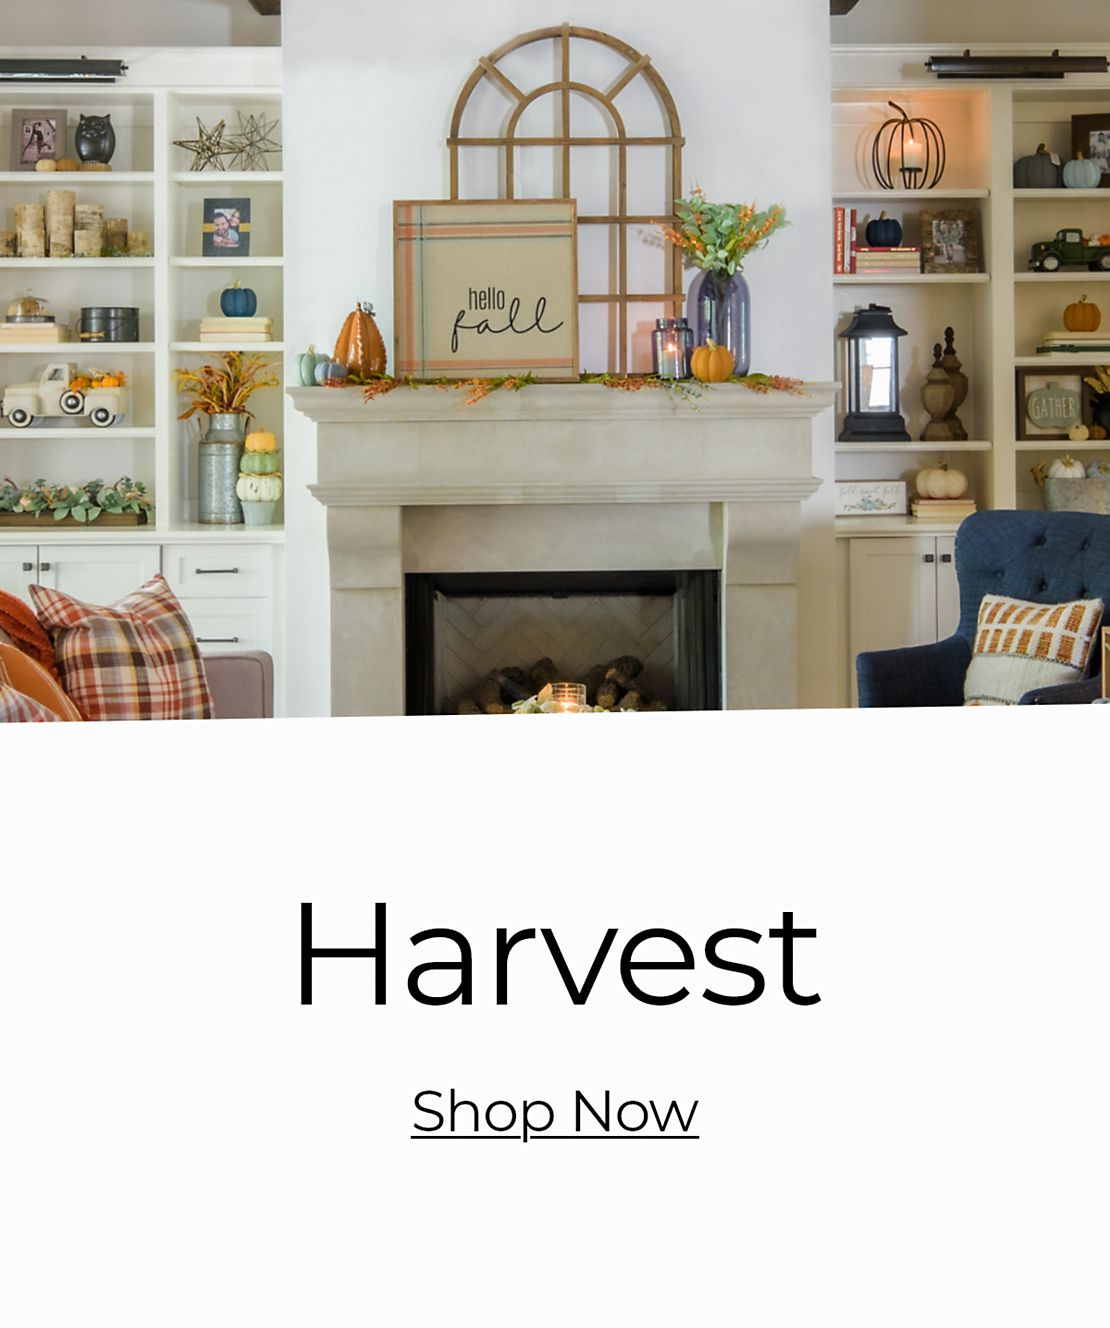 Home Decor, Wall Decor, Furniture, Unique Gifts | Kirklands